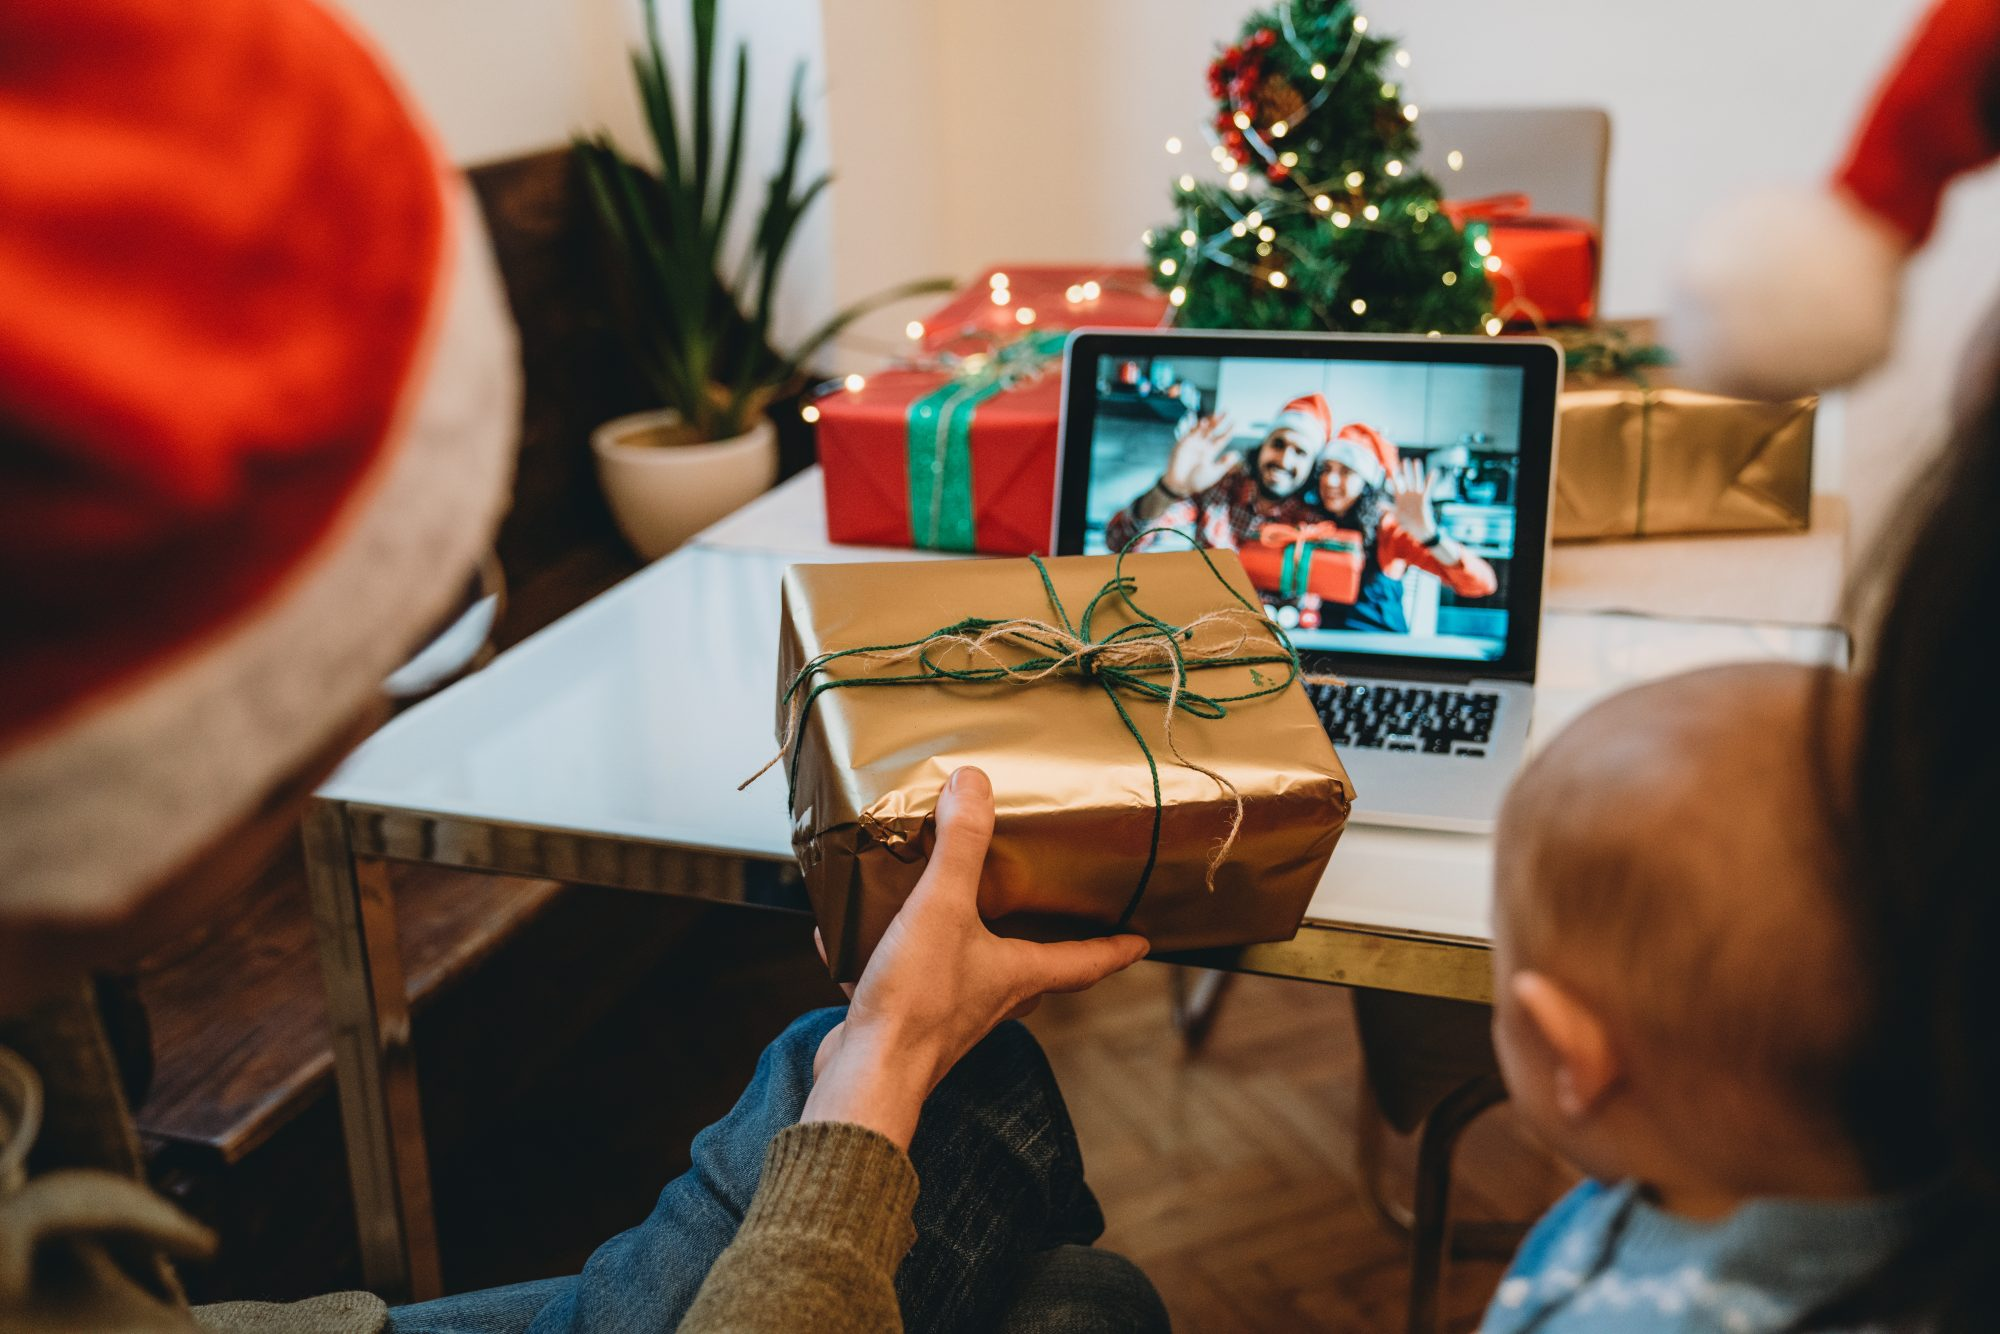 Family celebrating Christmas together with a video call